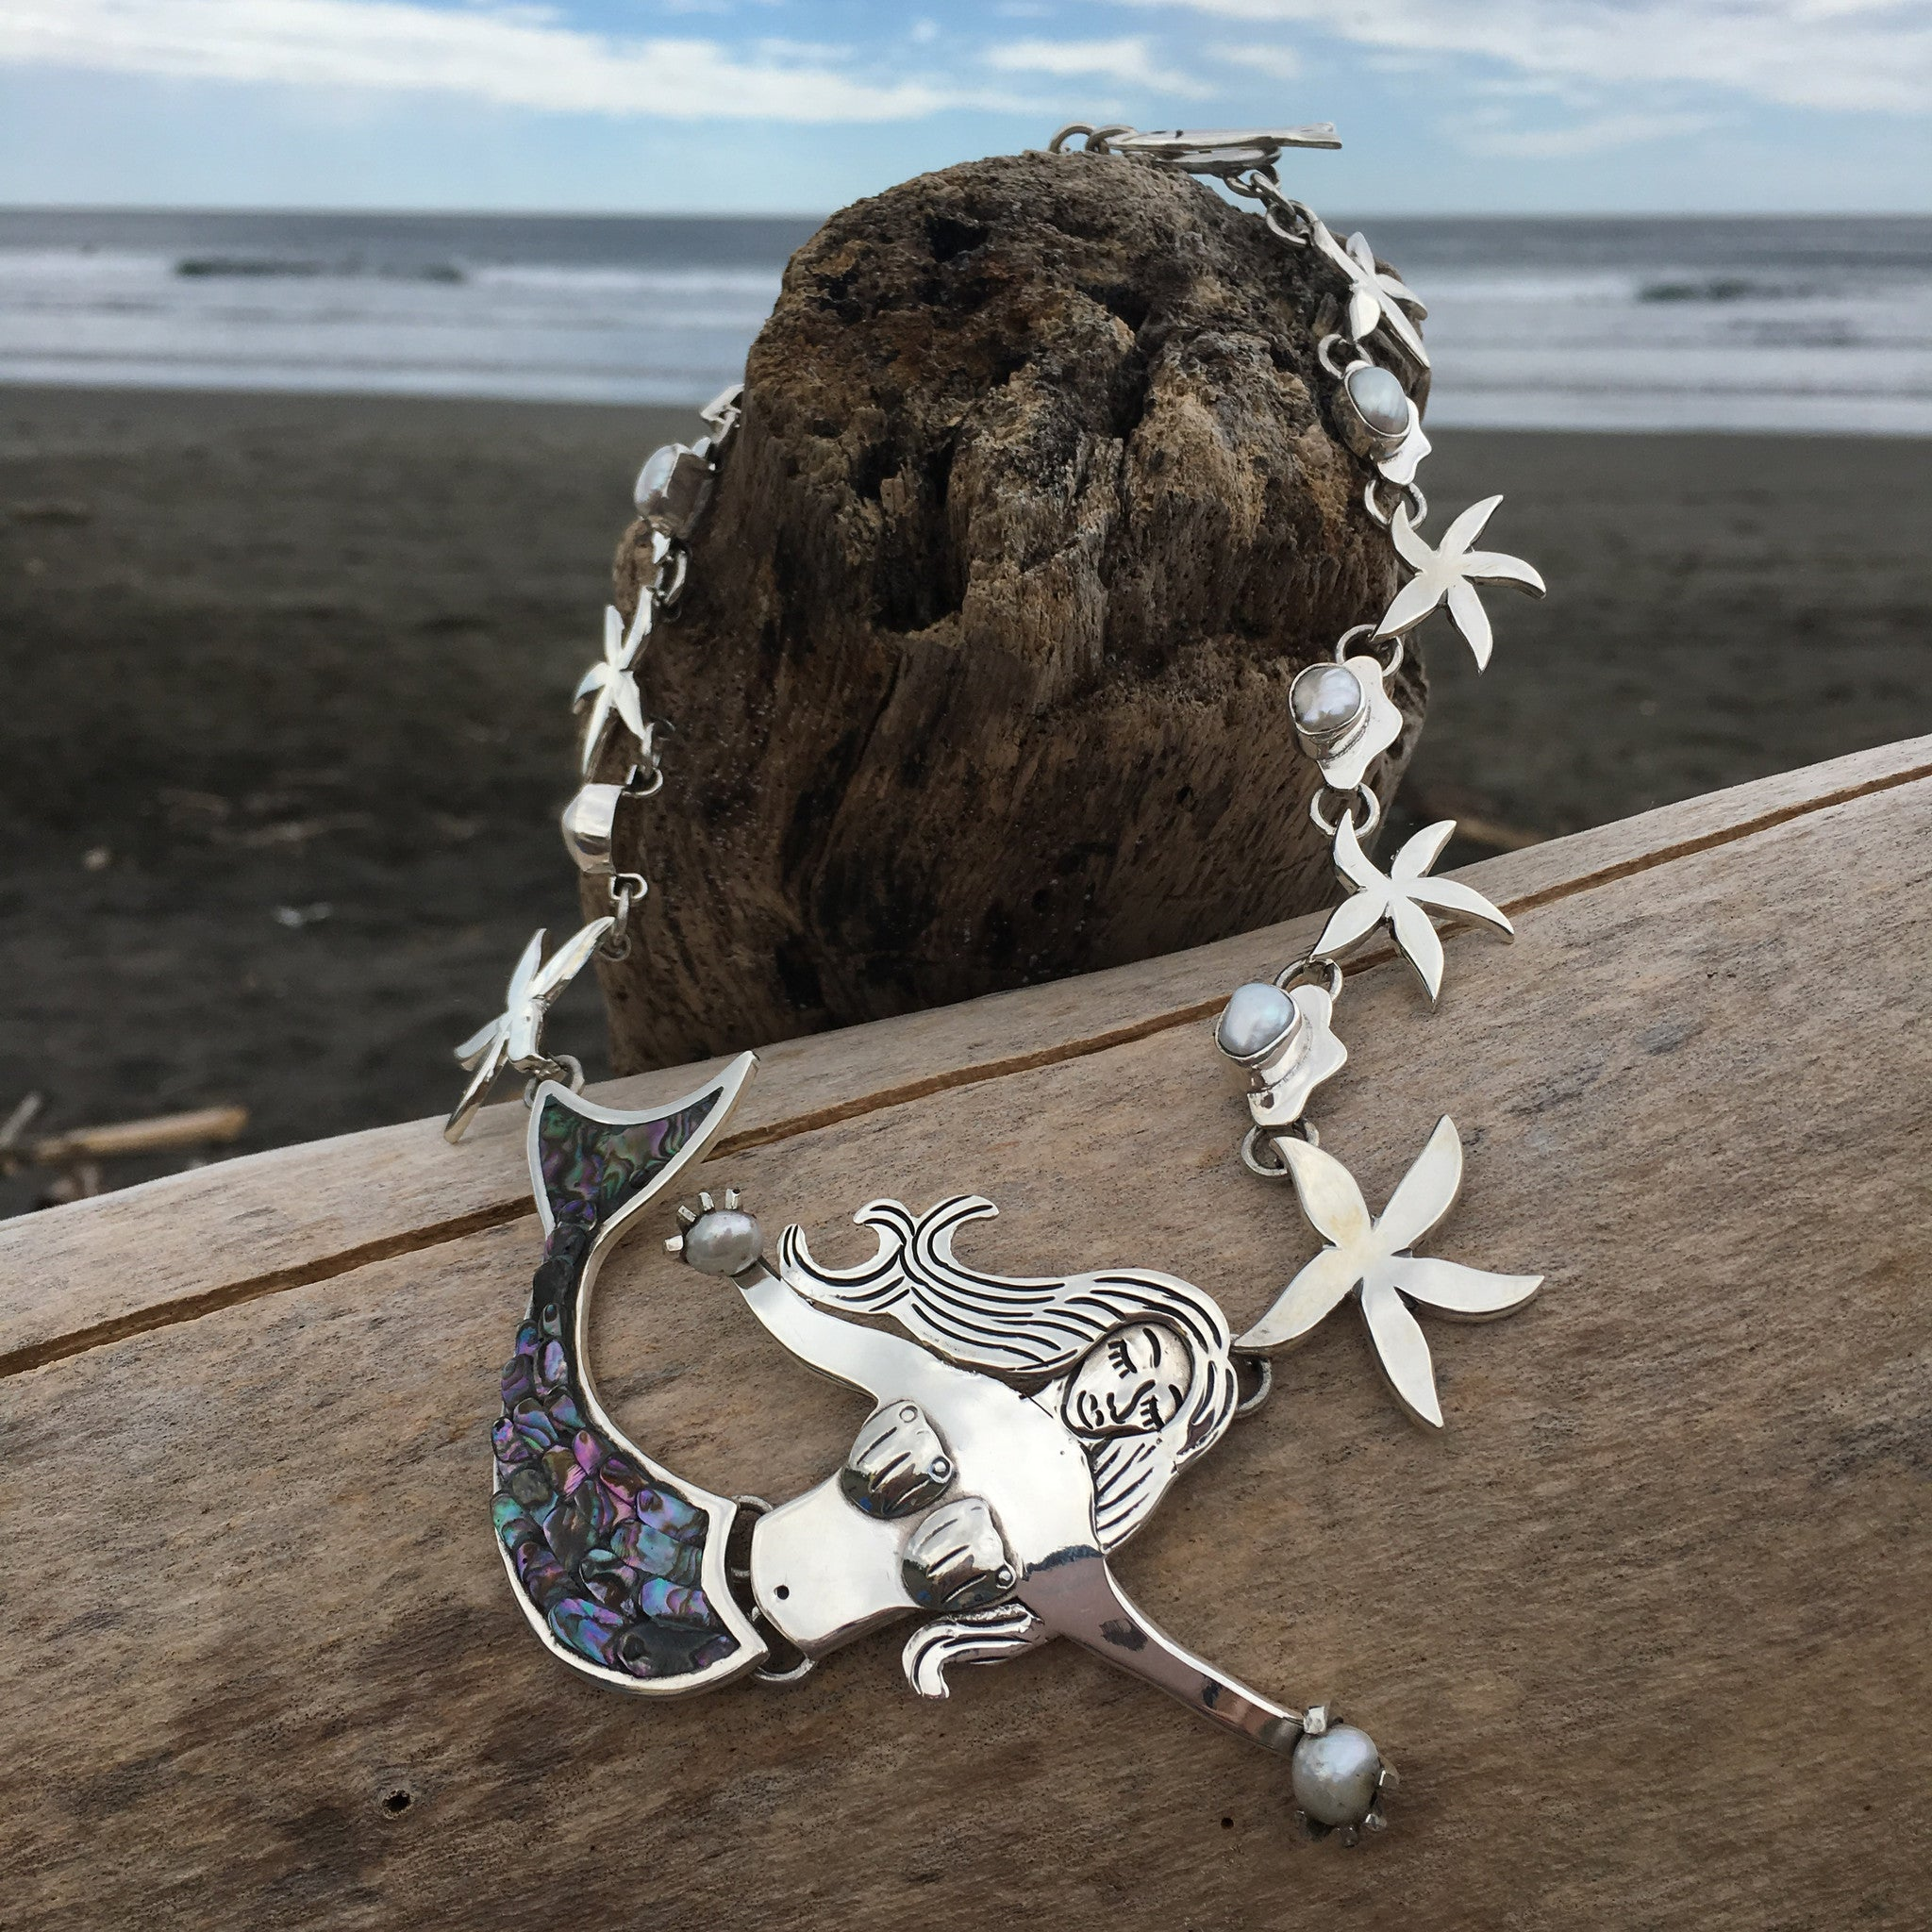 Mermaid Goddess Necklace-Jenstones Jewelry